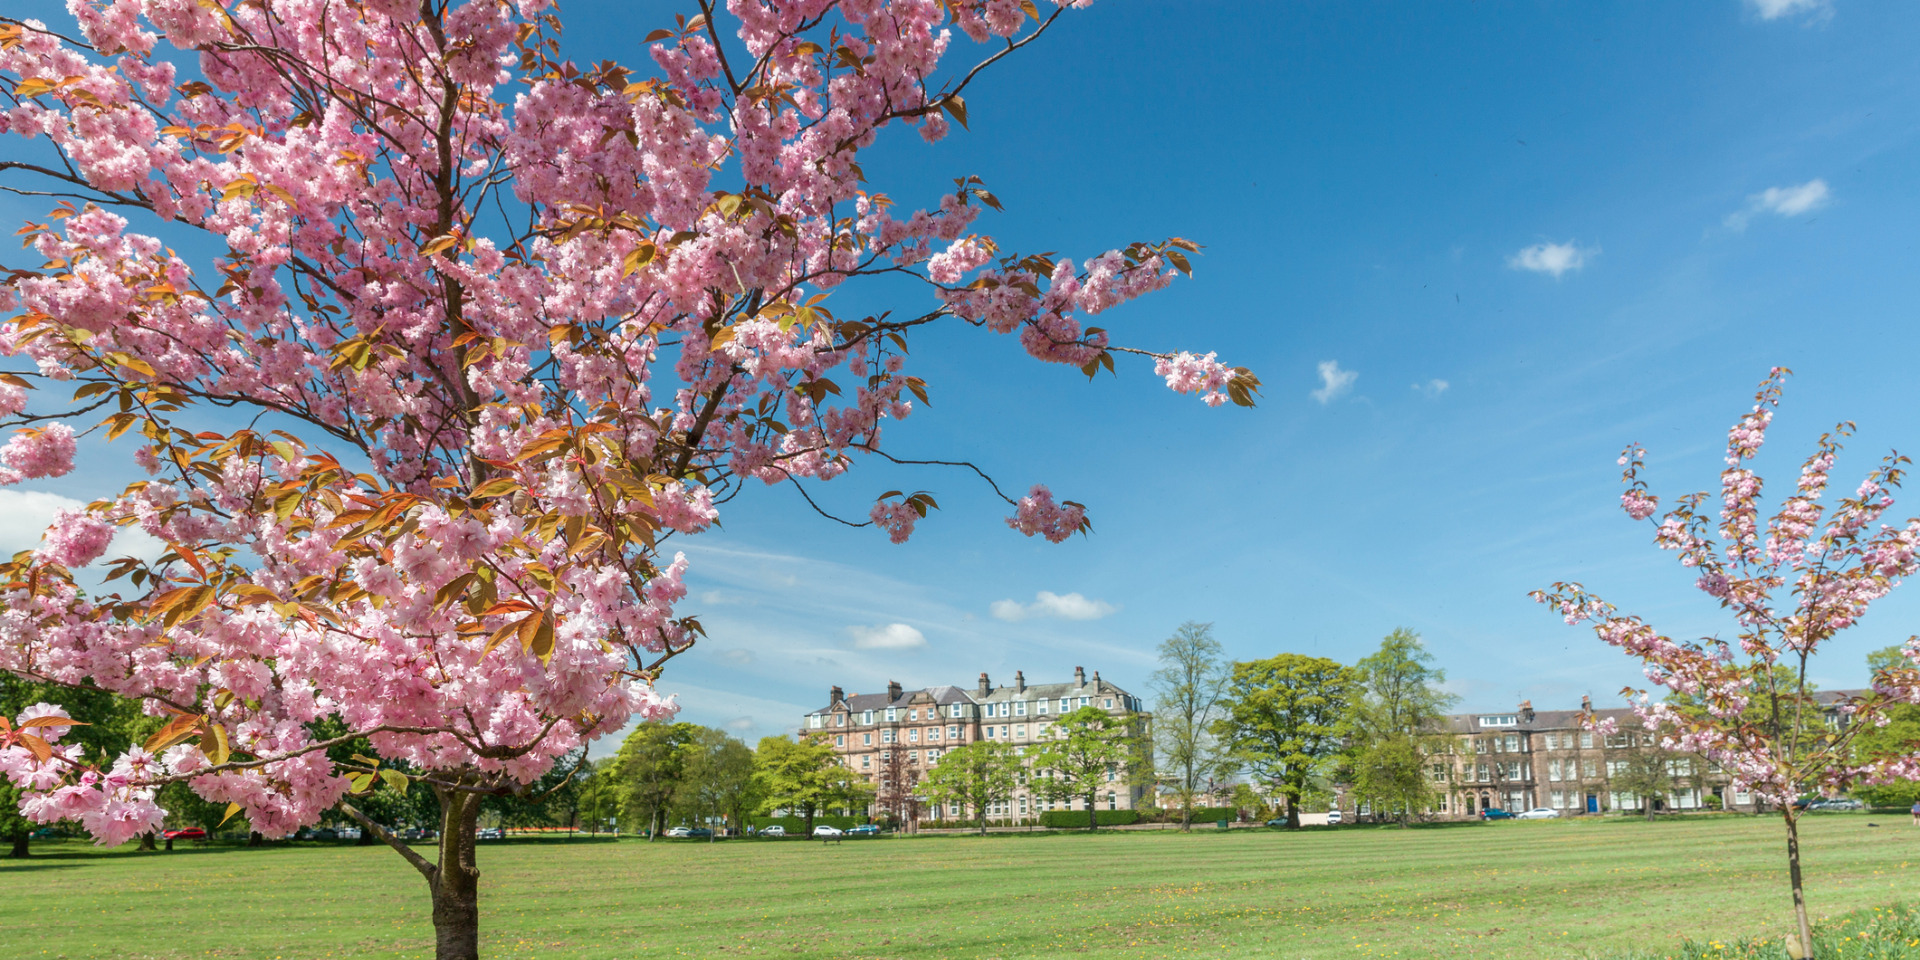 blossom tree in bloom on harrogate stray in north yorkshire